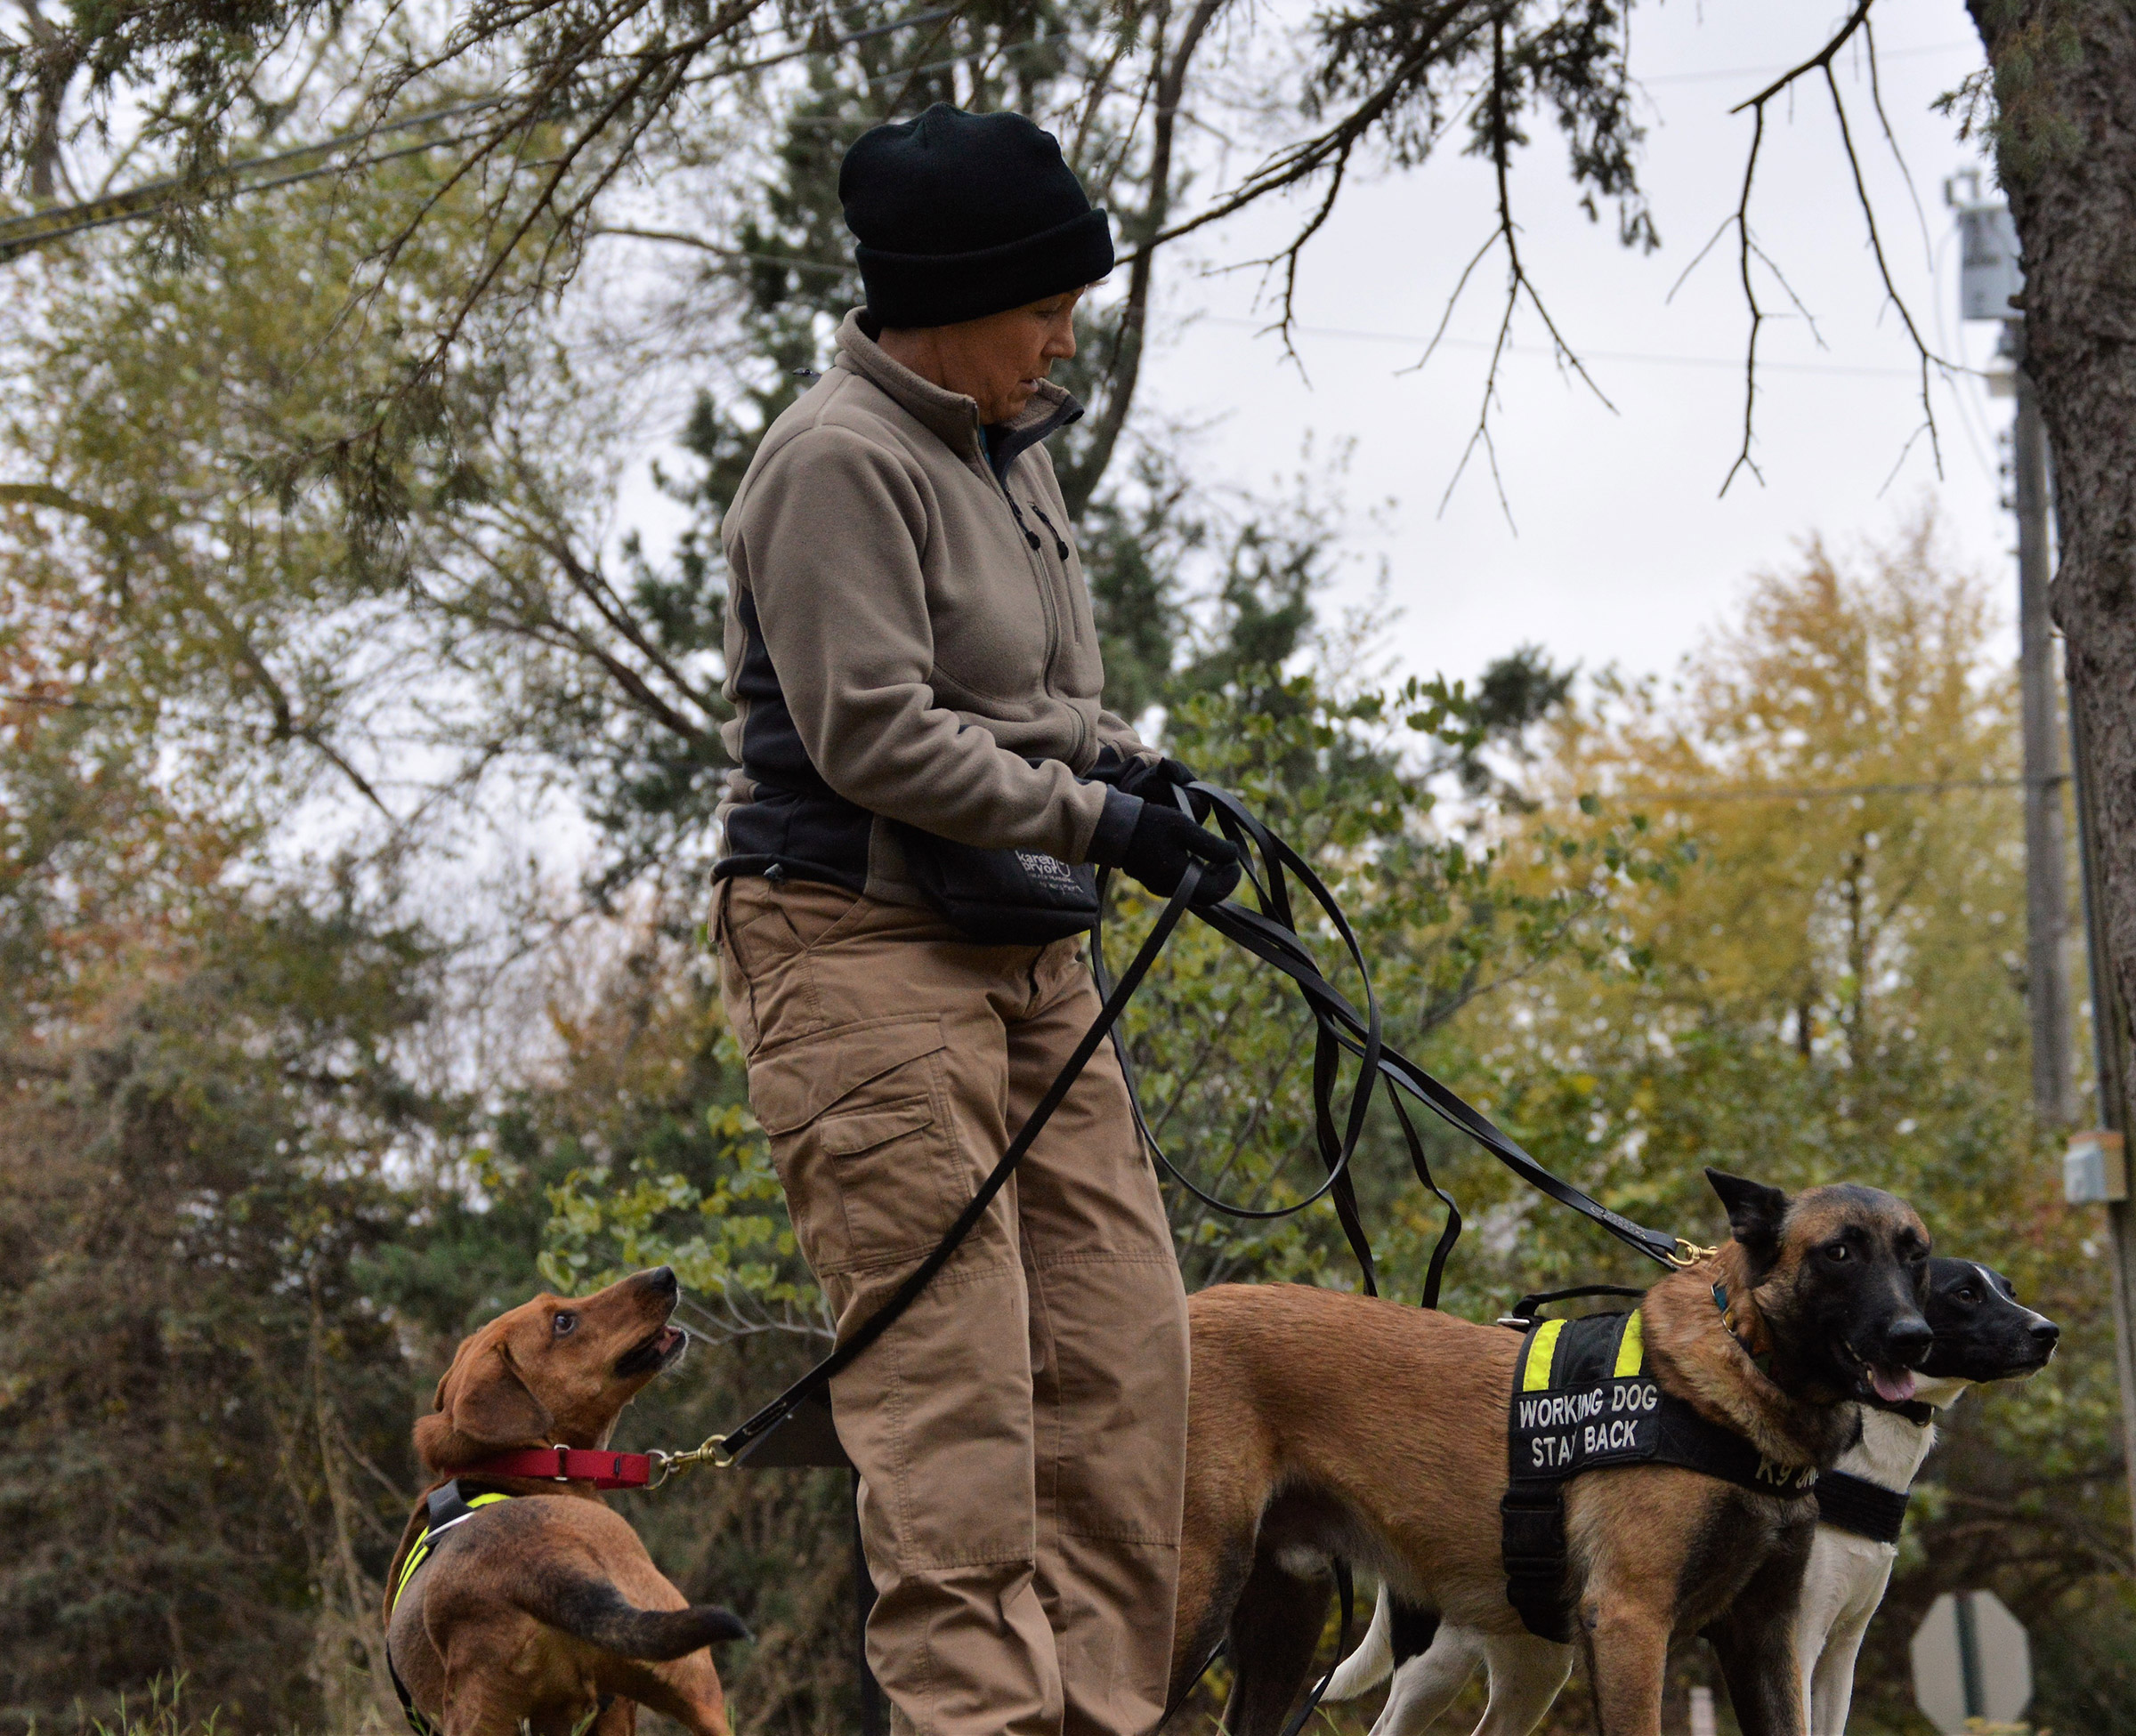 Pet detective Karin TarQwyn with her team of K9s